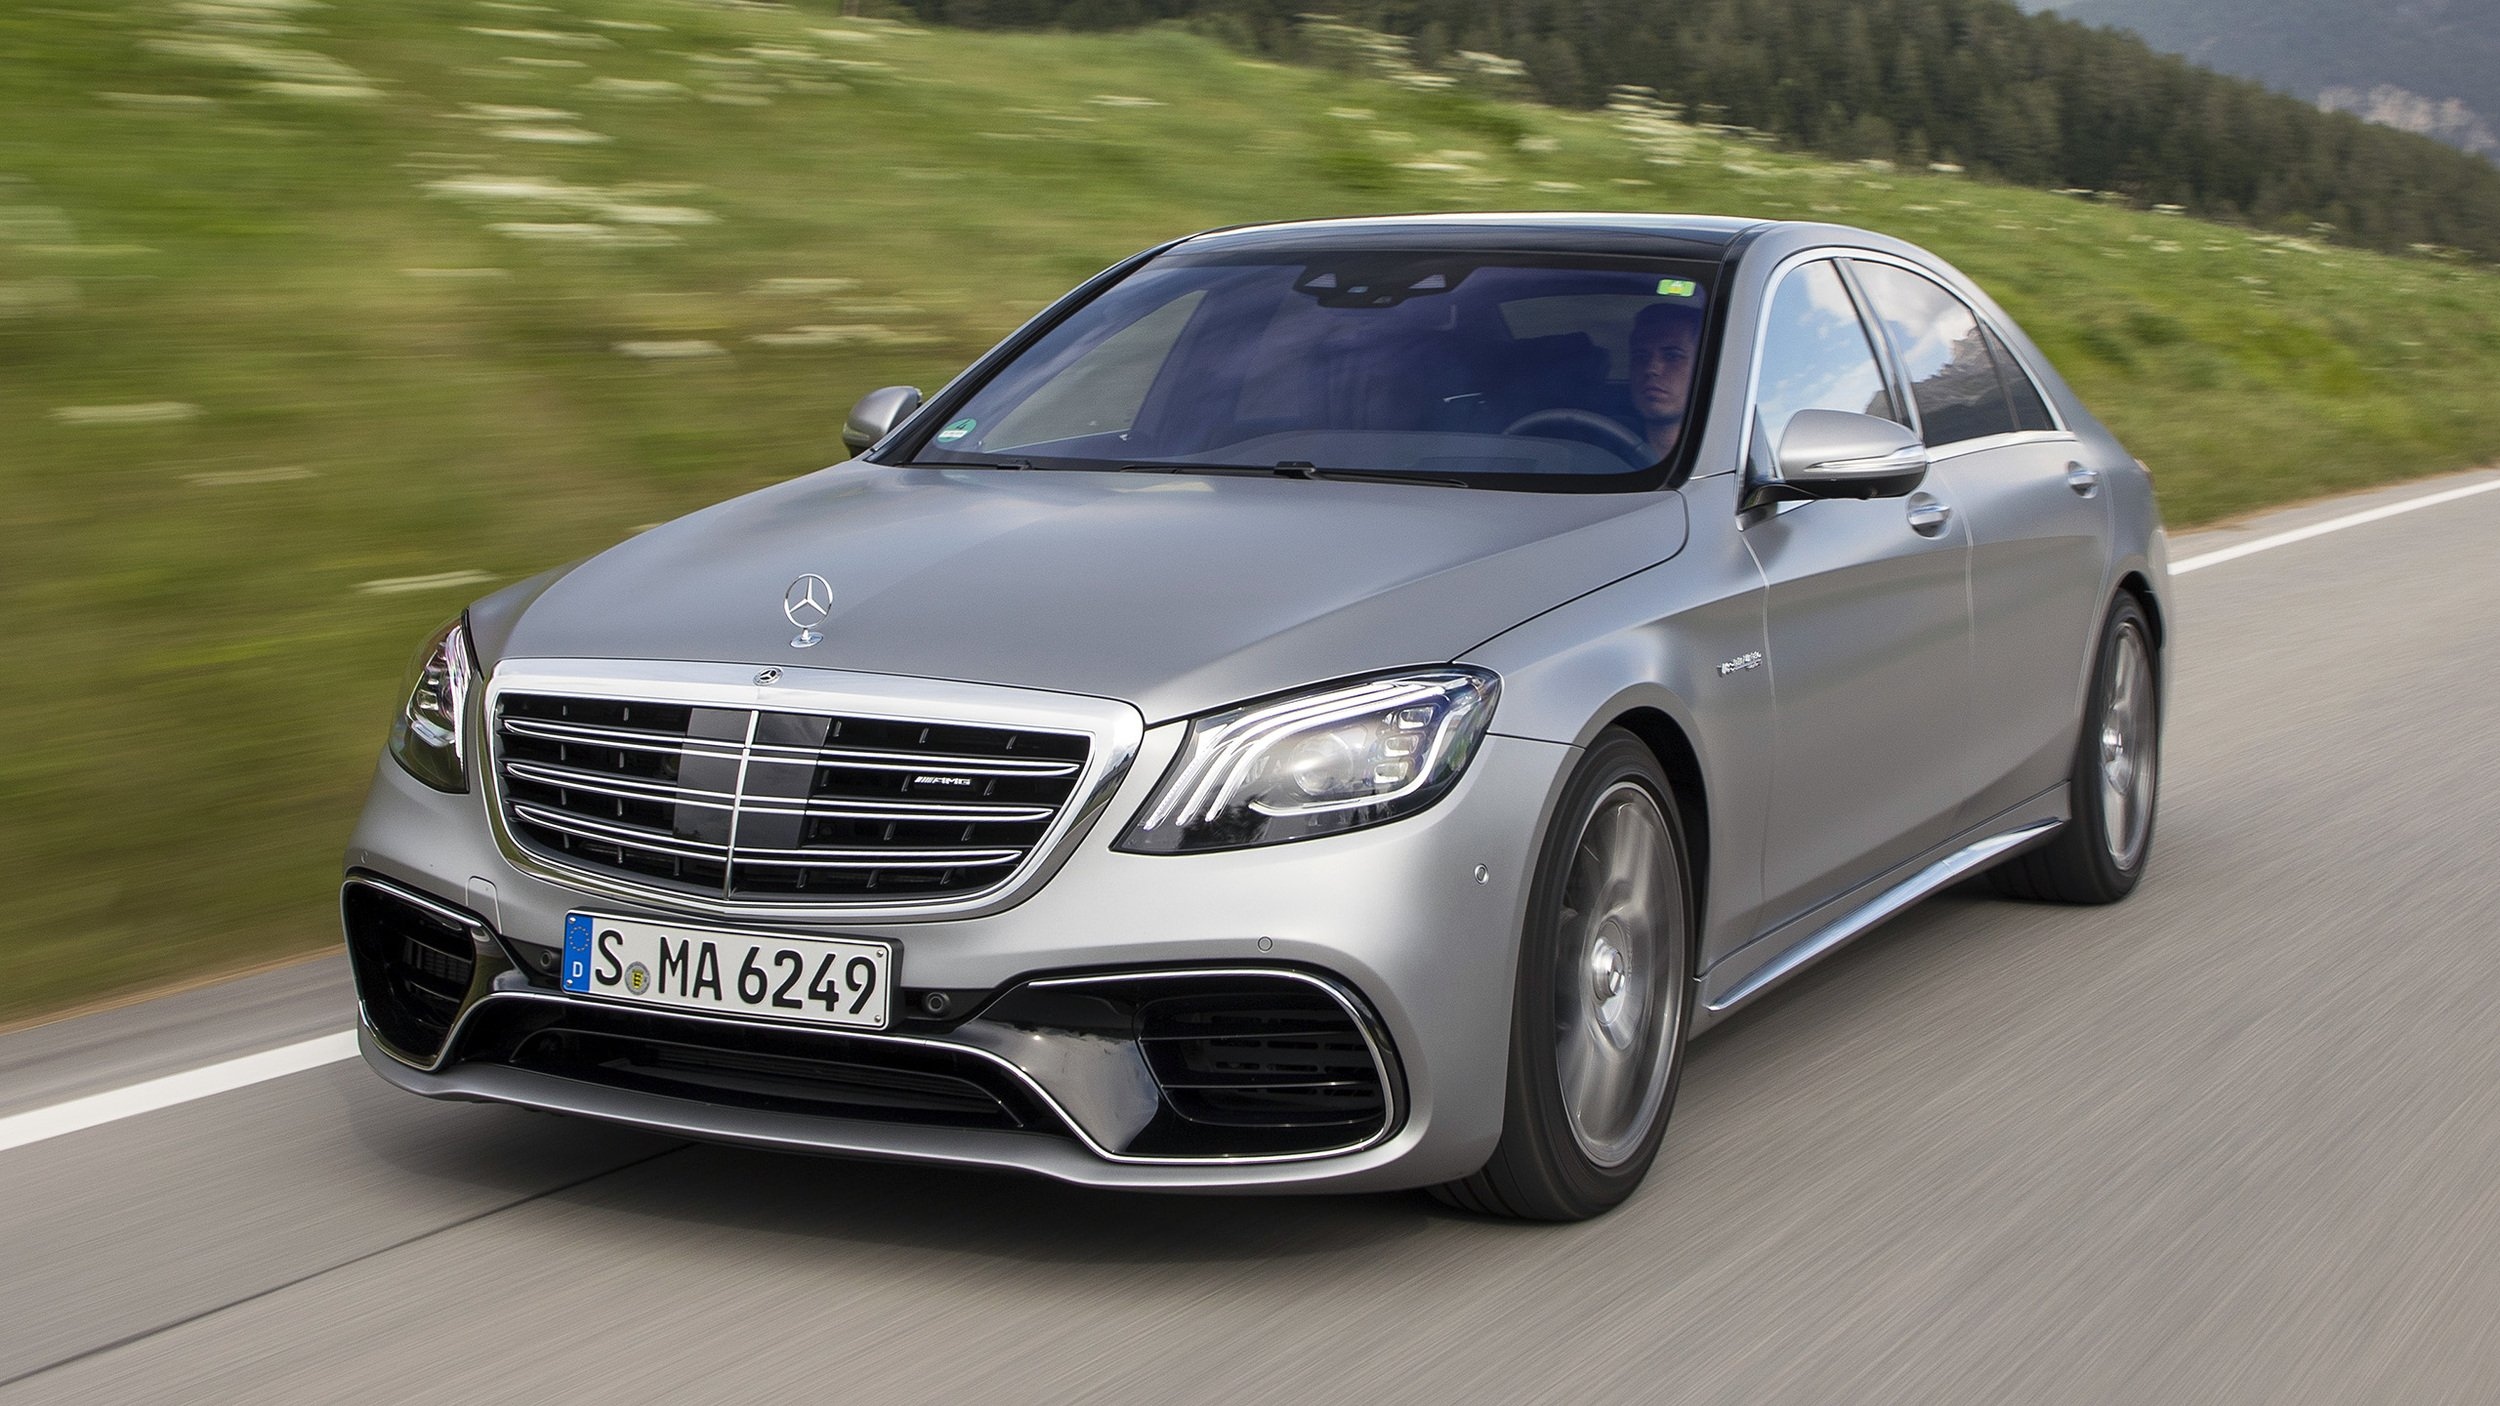 7 things worth knowing about the 2018 Mercedes-Benz S-Class